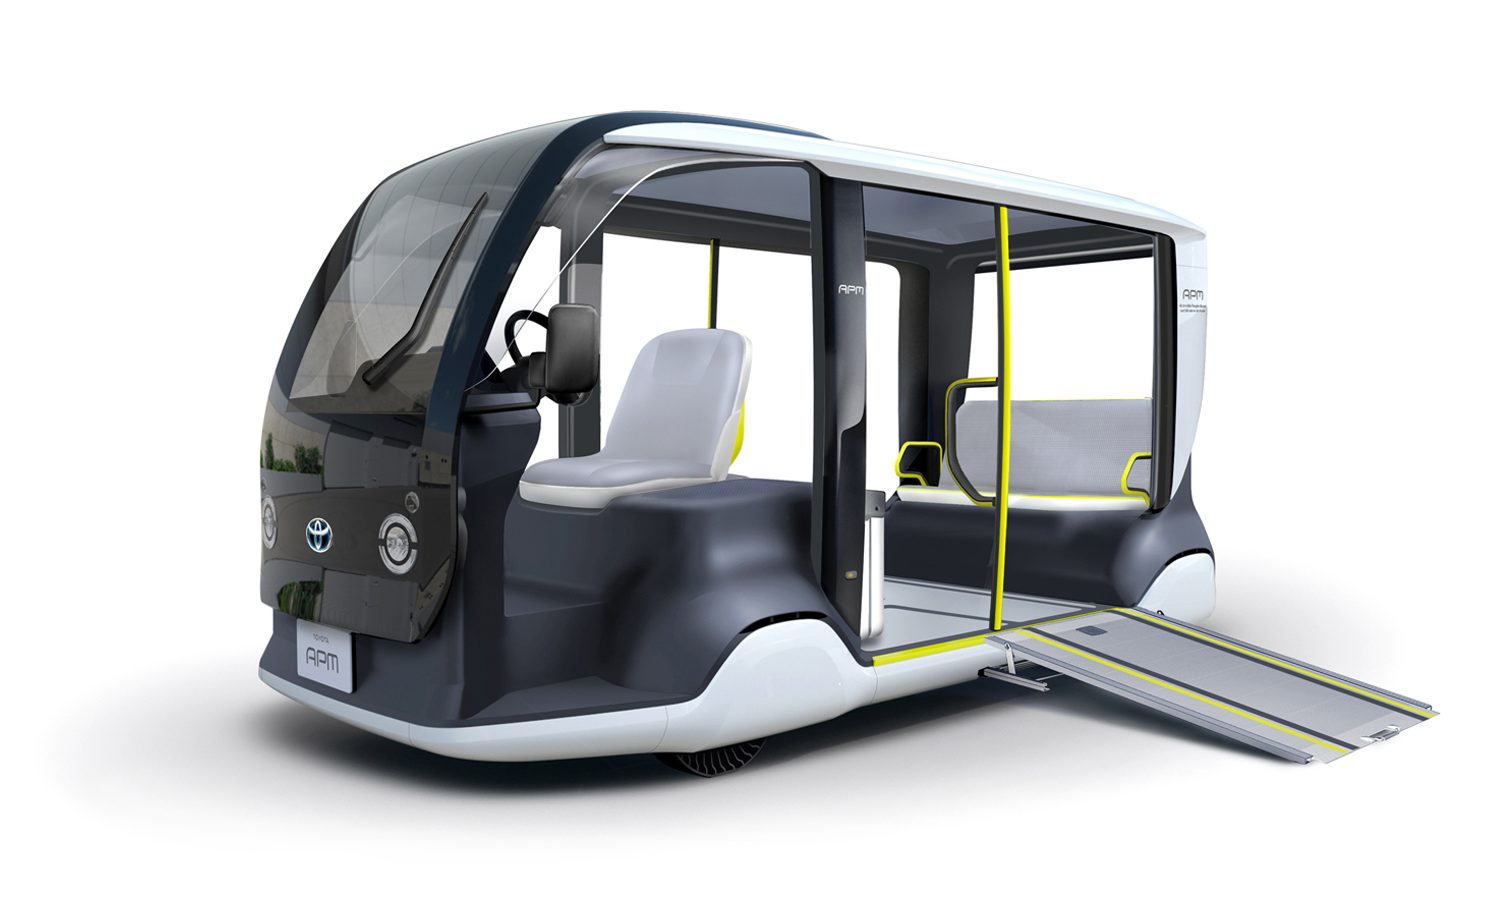 """Toyota Supports Tokyo 2020 with Specially-designed """"APM"""" Mobility Vehicle"""